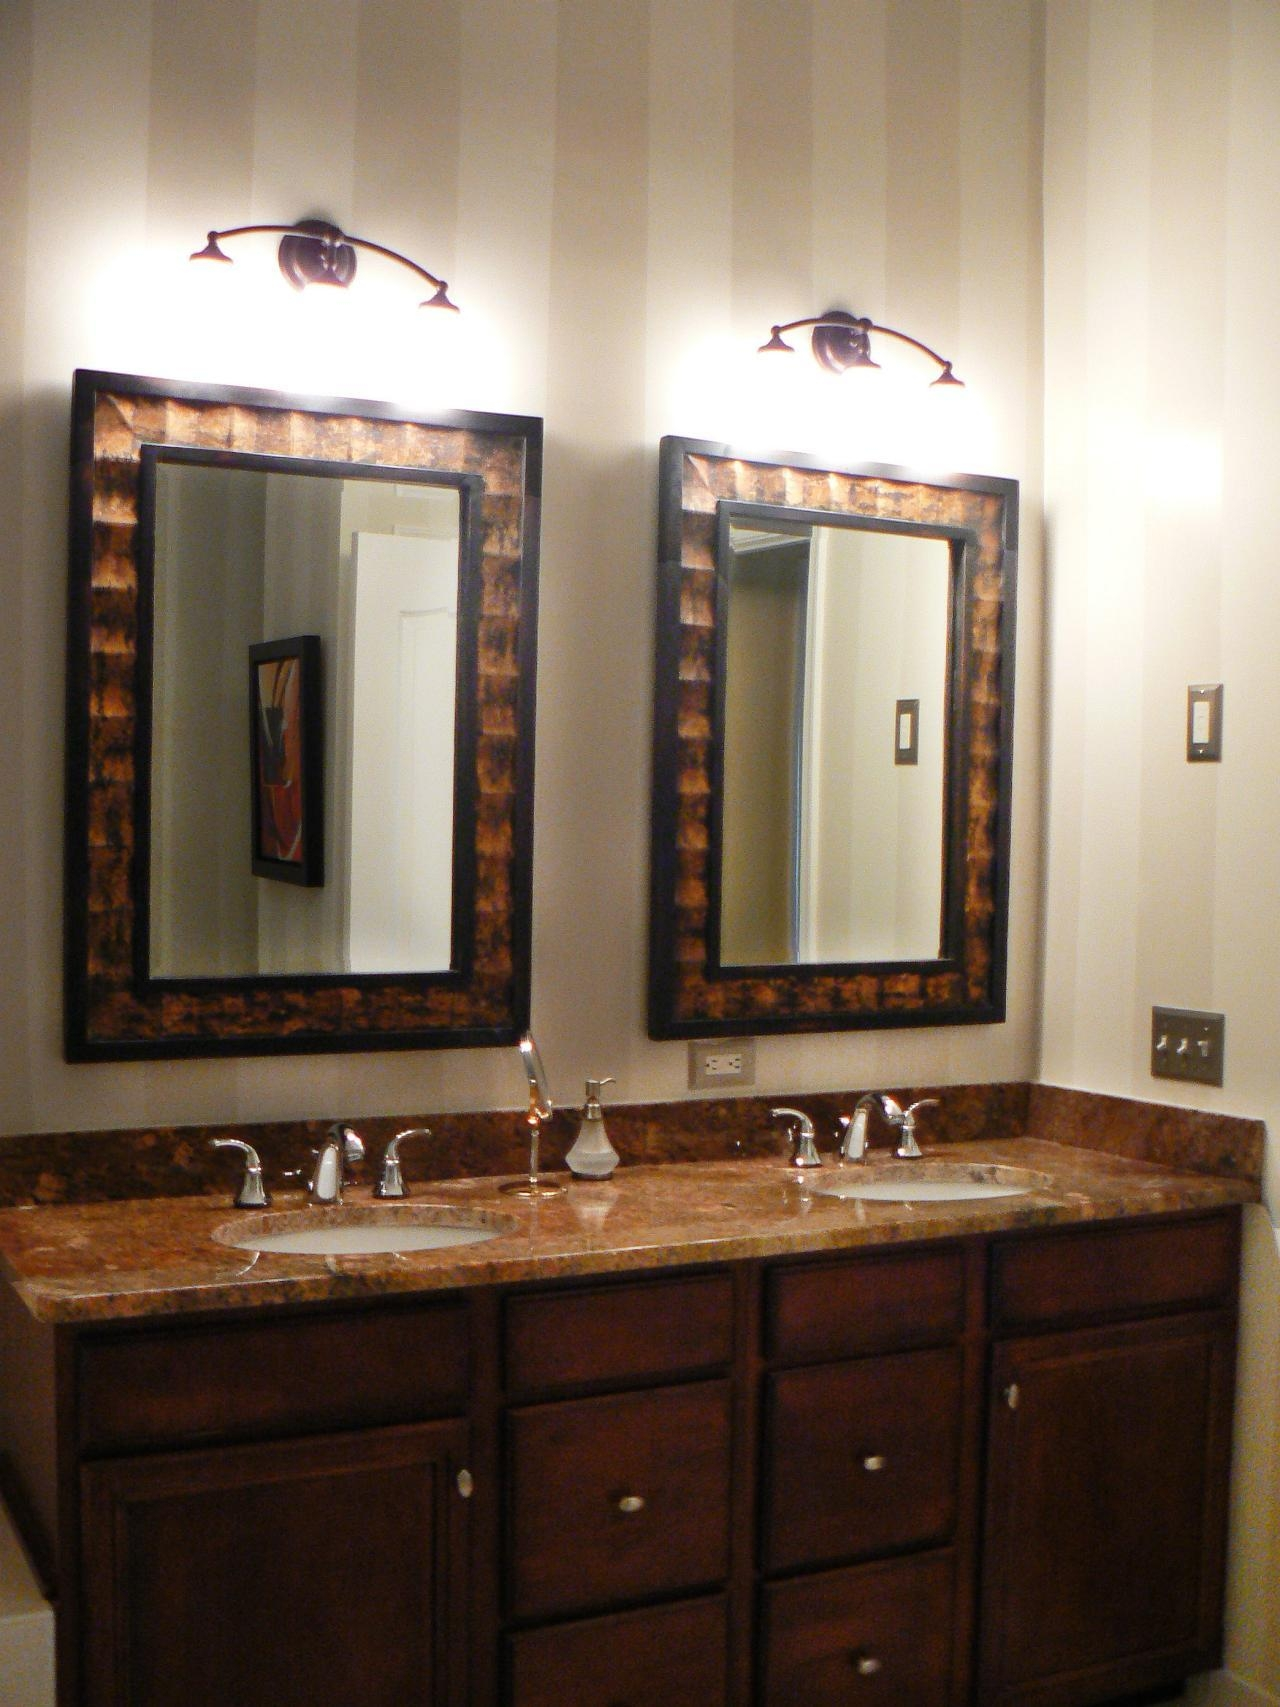 Bathroom Cabinets : Mirror Borders Large Decorative Mirrors Within Decorative Mirrors For Bathroom Vanity (View 5 of 20)